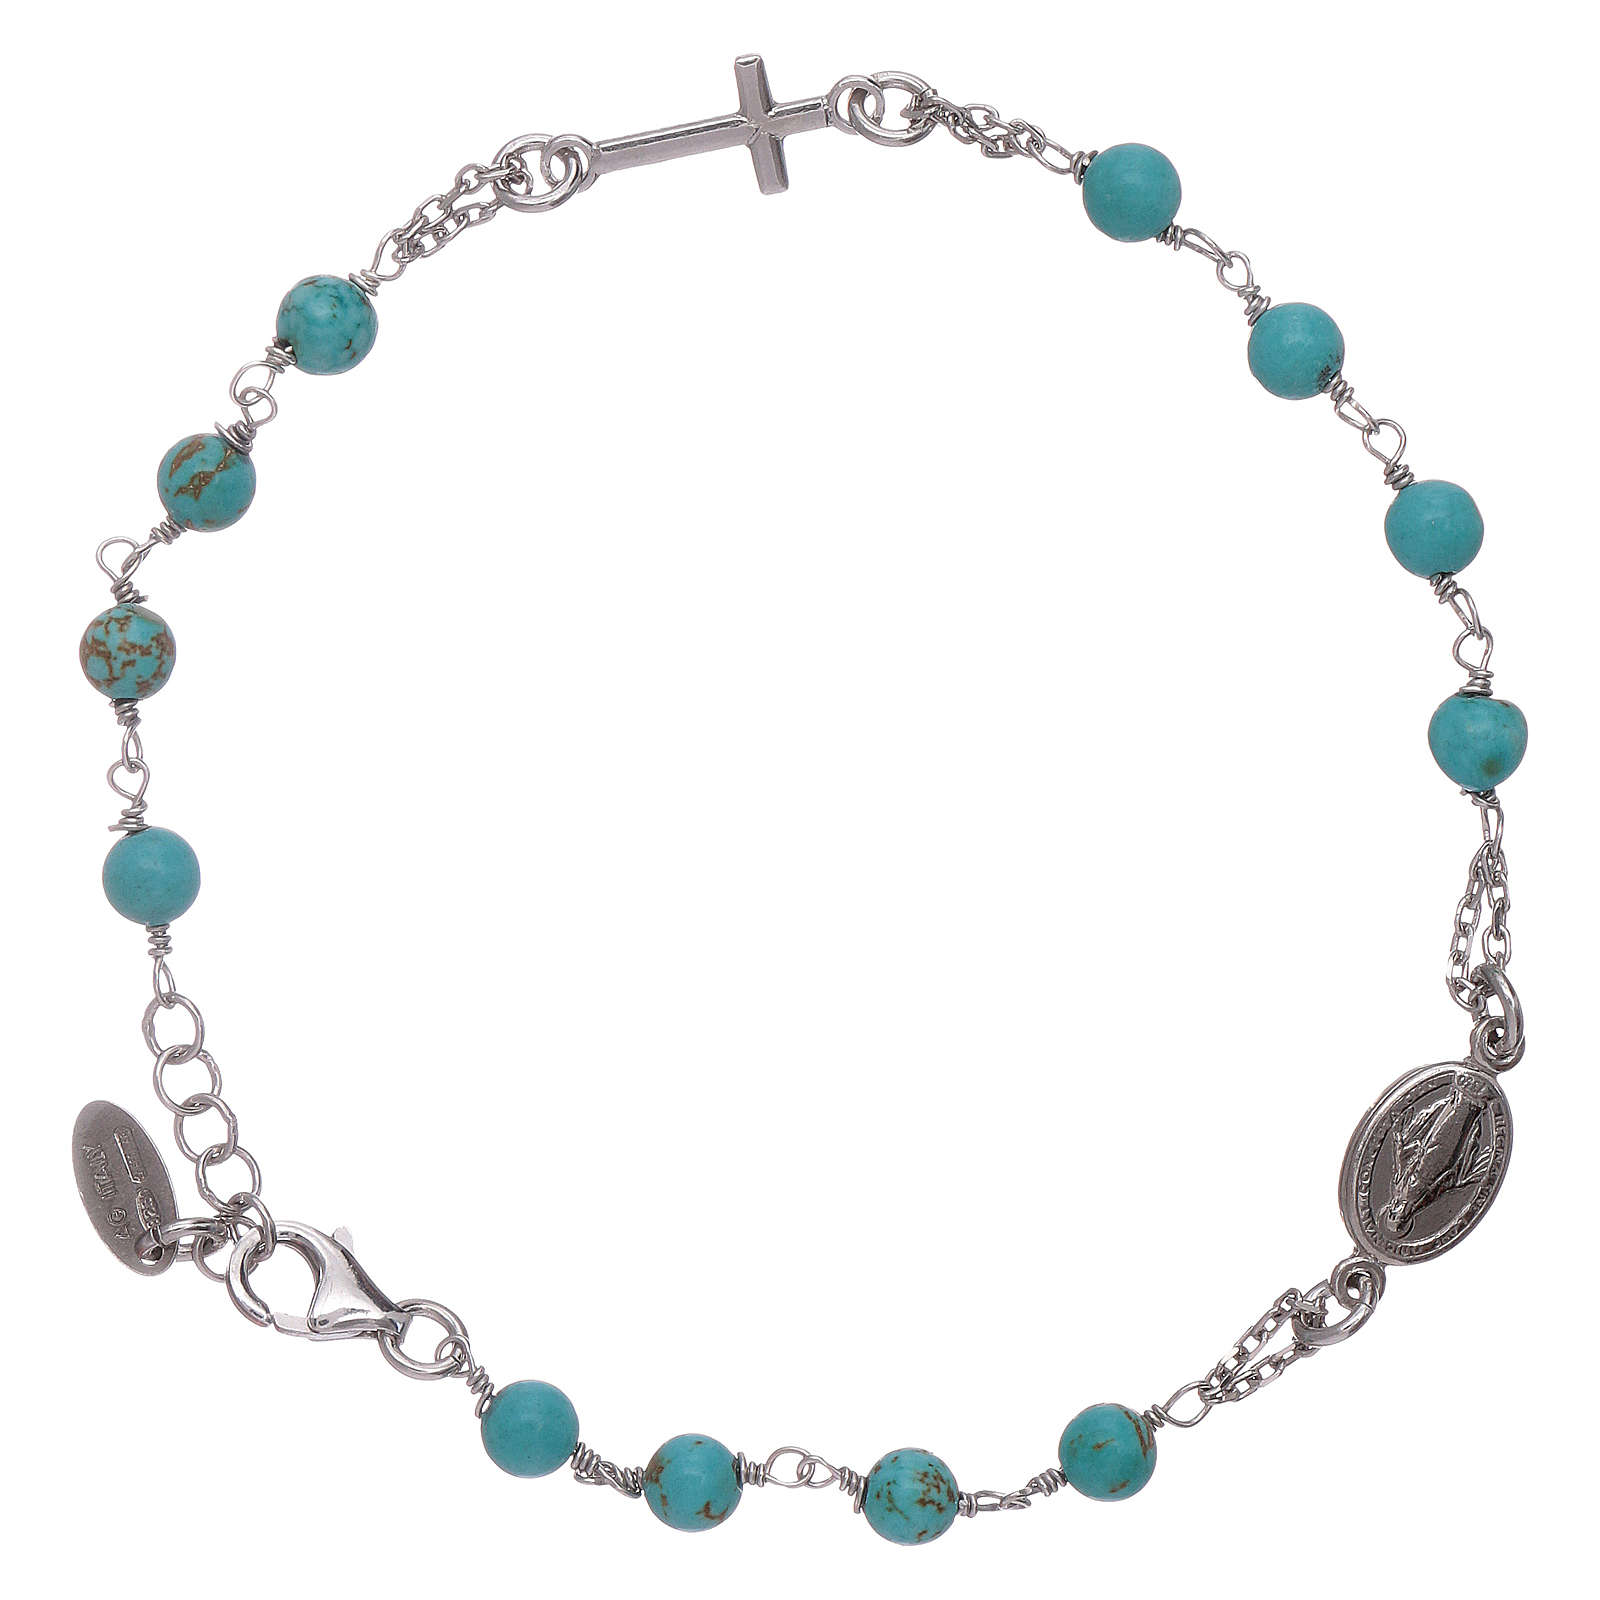 AMEN 925 sterling silver  rosary bracelet with turquoise beads 4